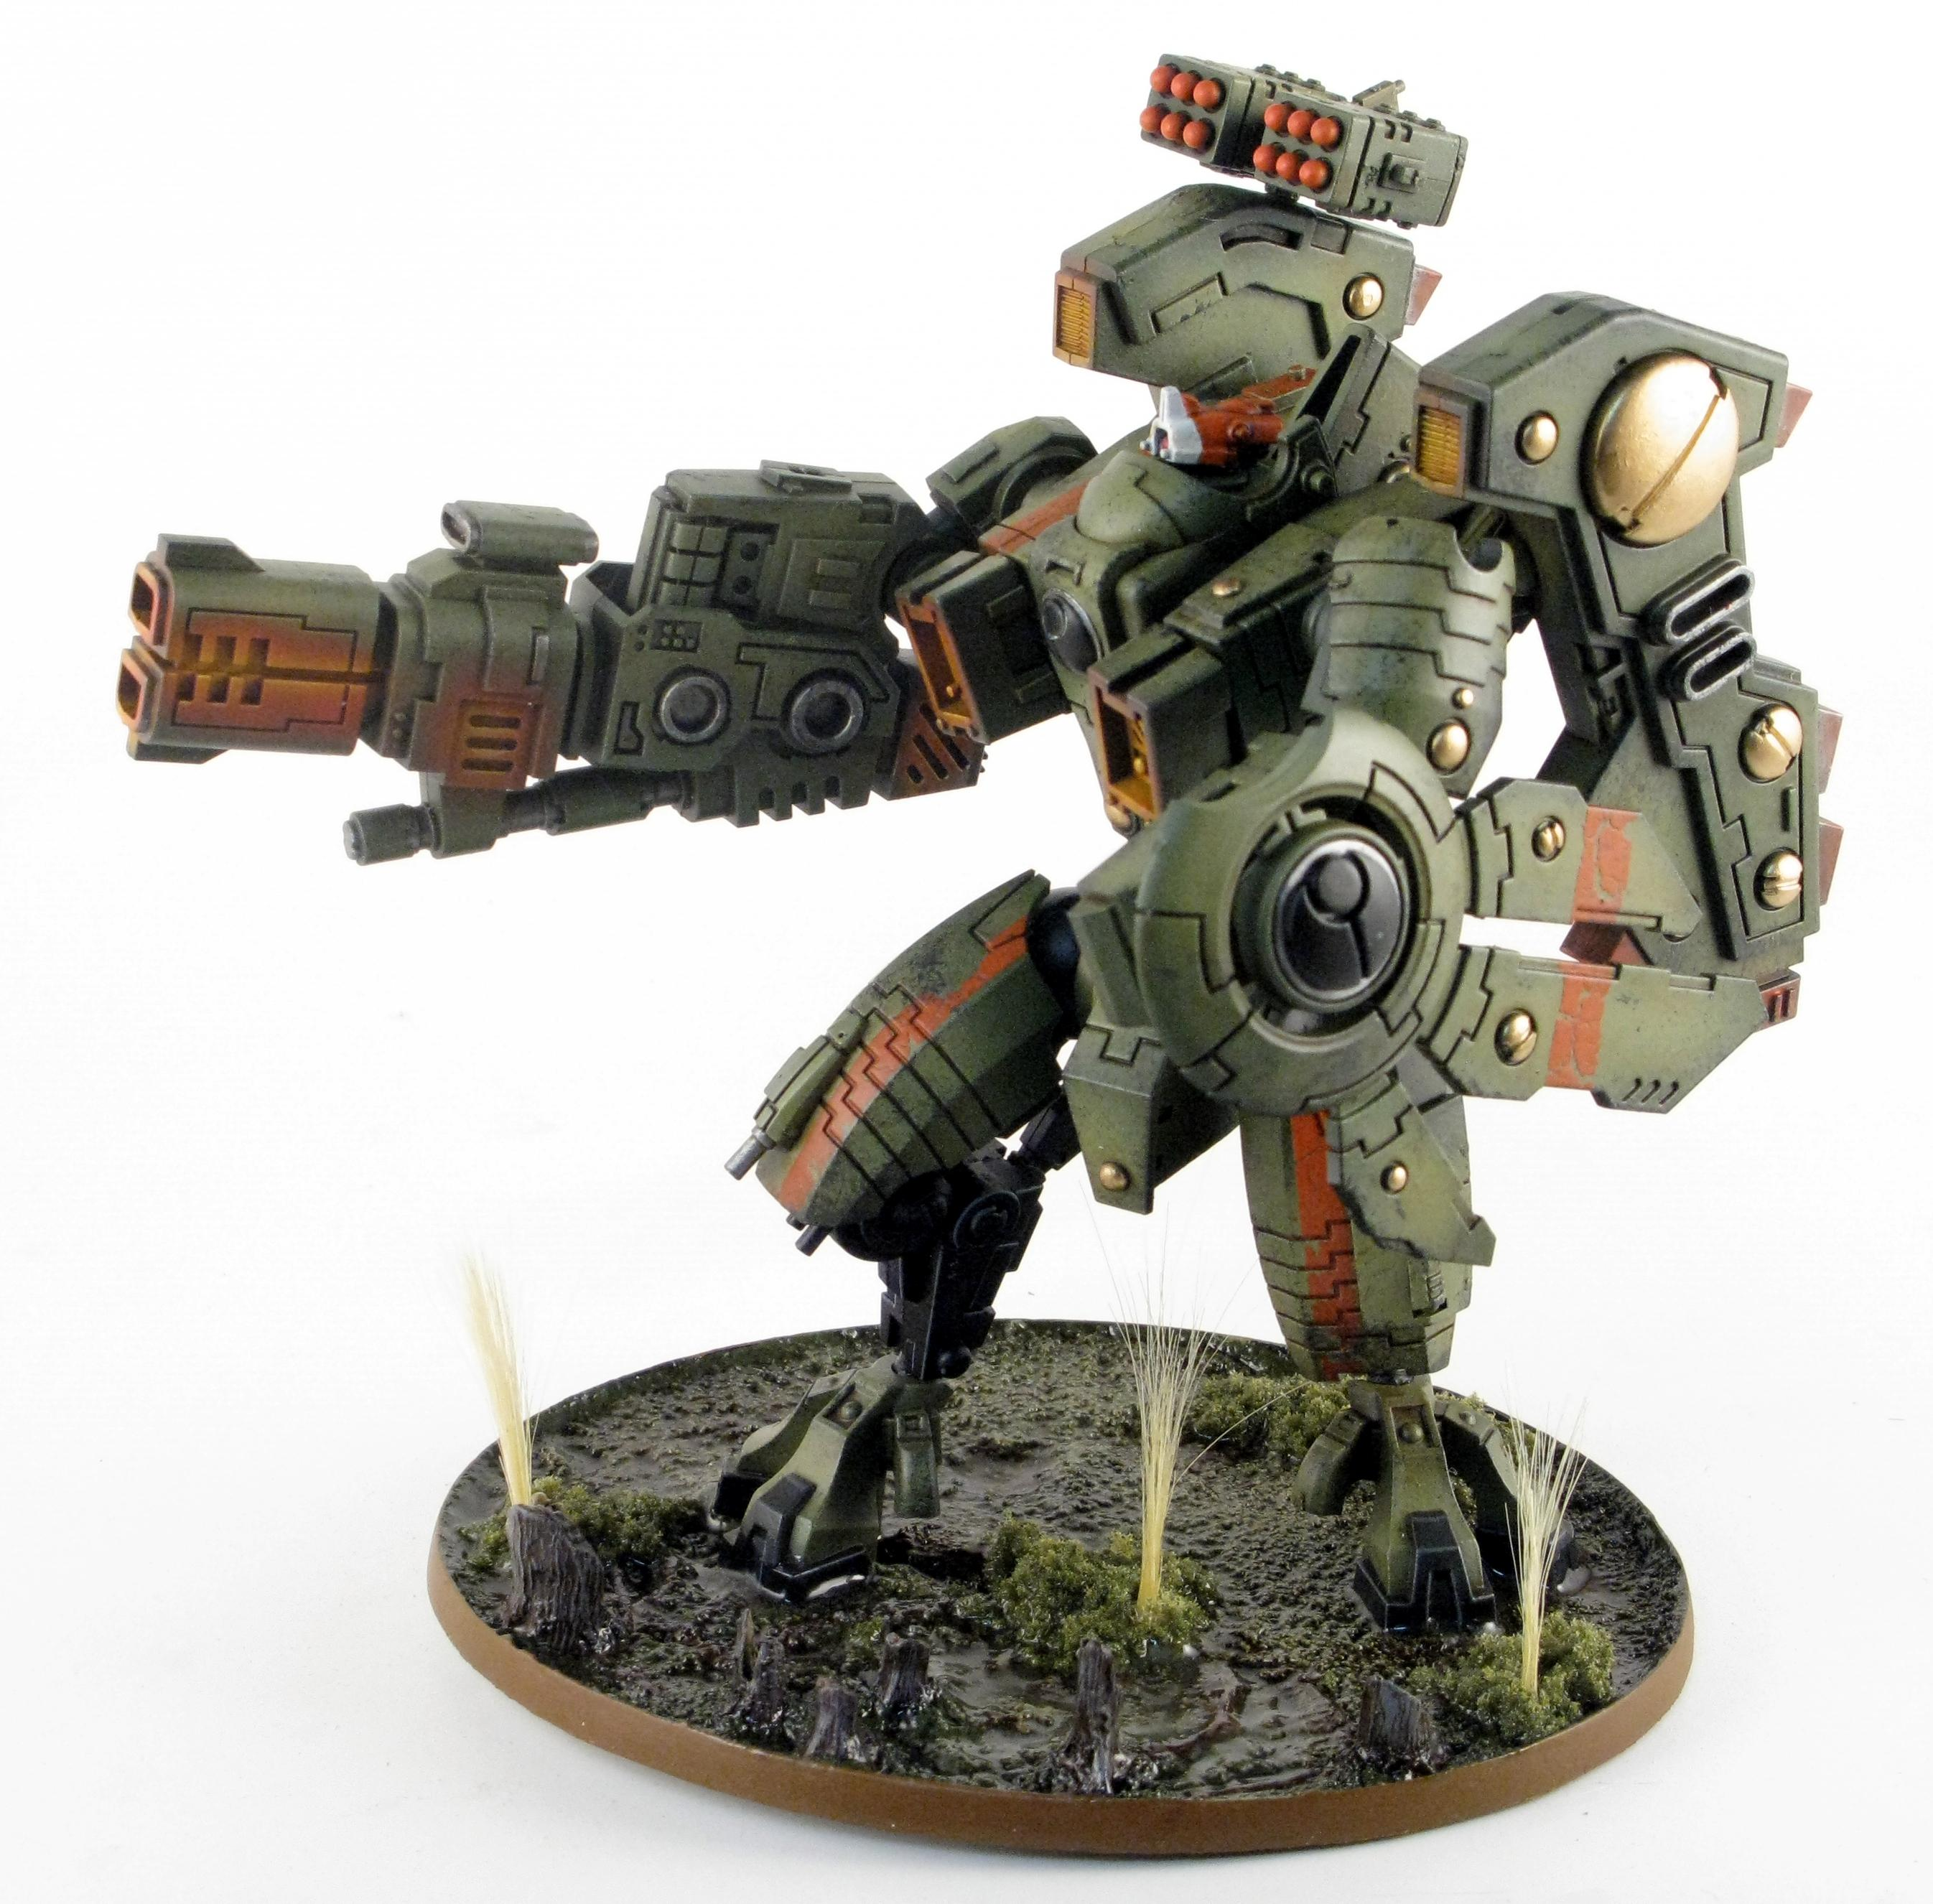 Airbrush, Blasted Wetlands, Brown, Gradient, Green, Gritty, Object Source Lighting, Riptide, Secret Weapon, Swamp, Tau, Weathered, Work In Progress